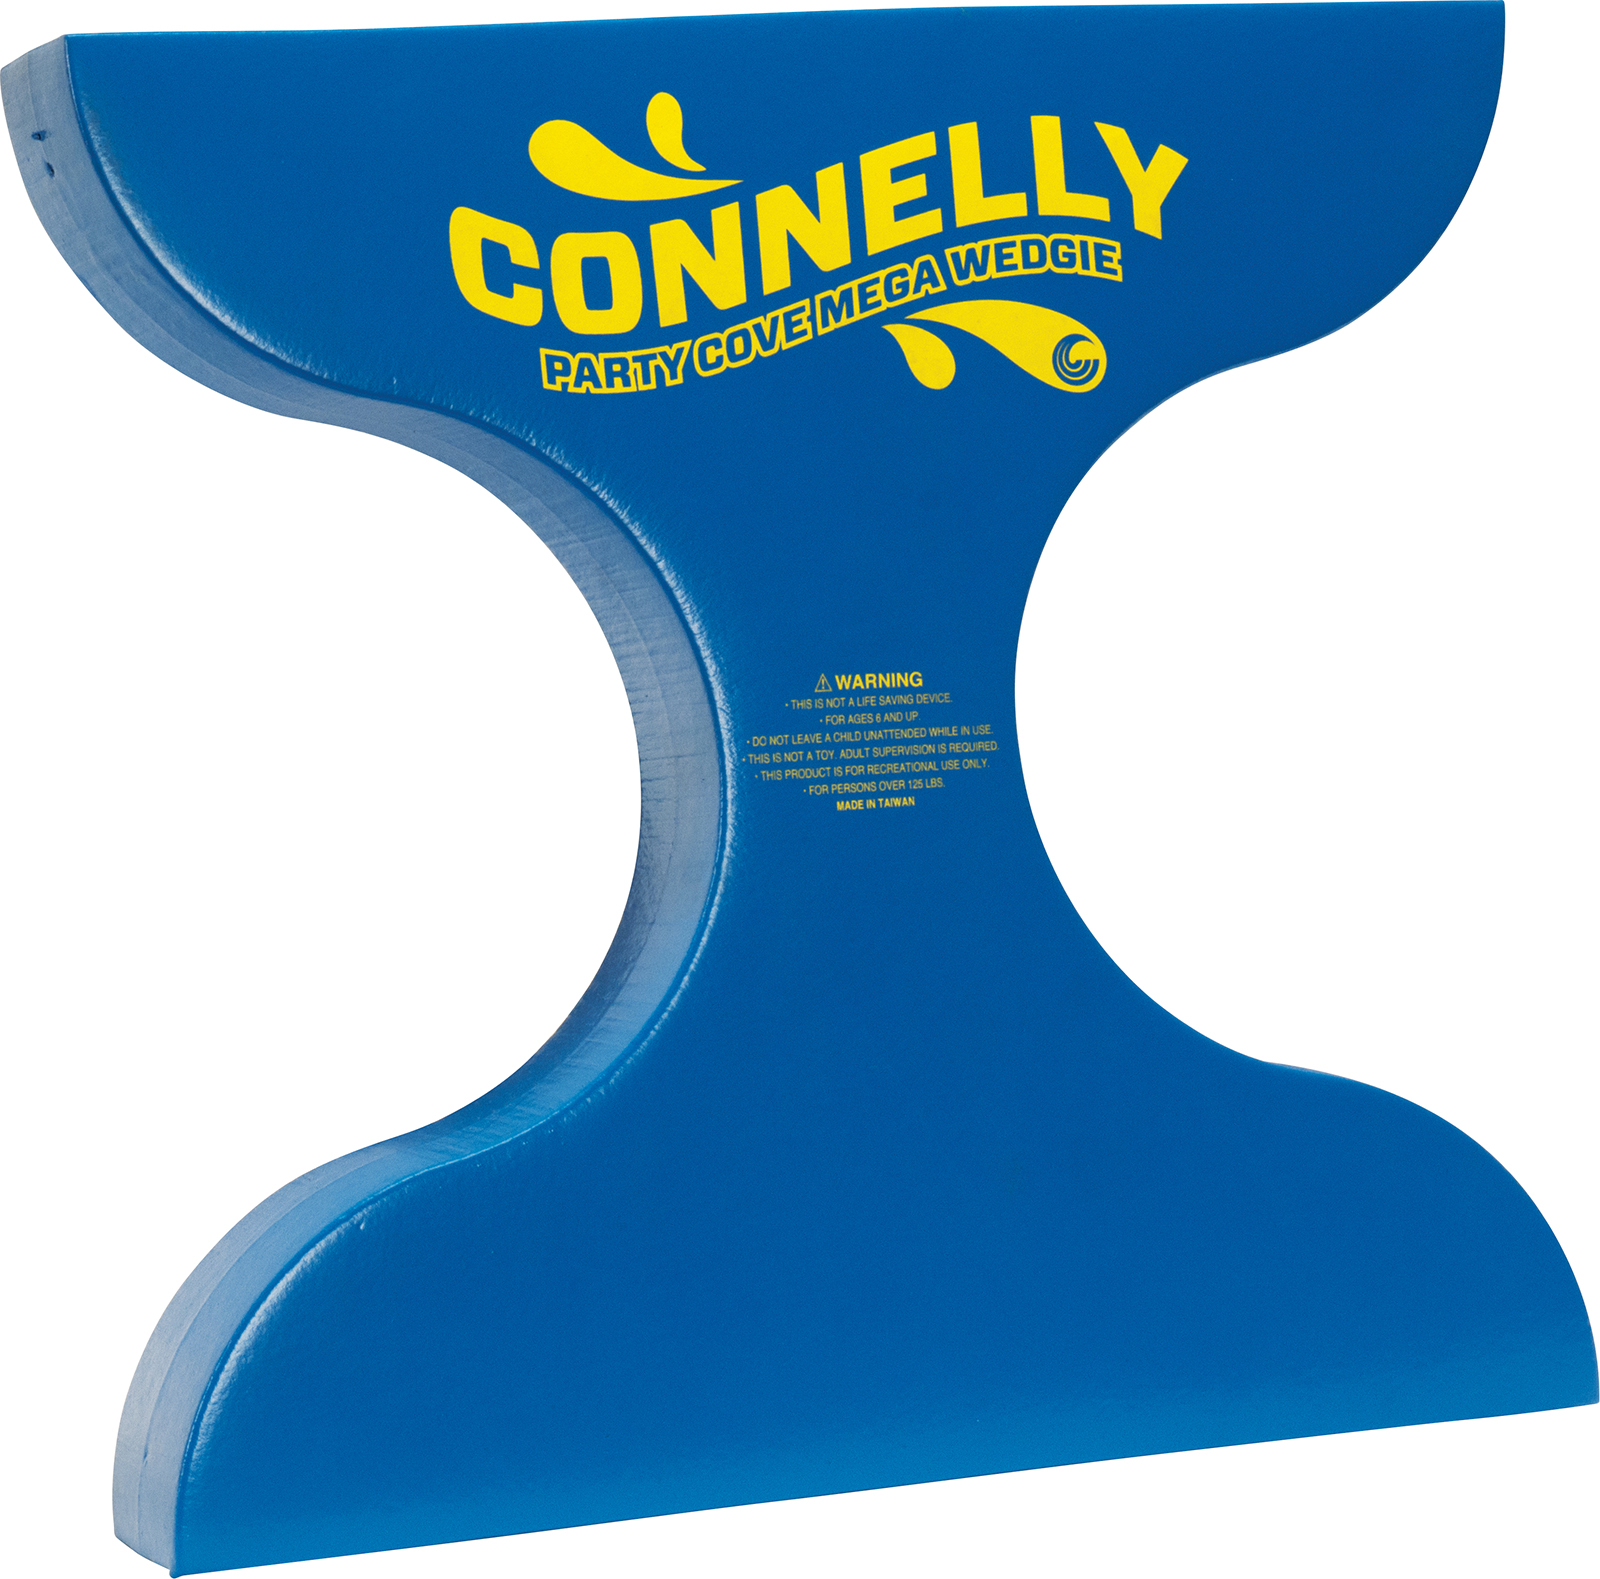 PARTY COVE MEGA WEDGIE - 6 PACK IN STORE DISPLAY CONNELLY 2018